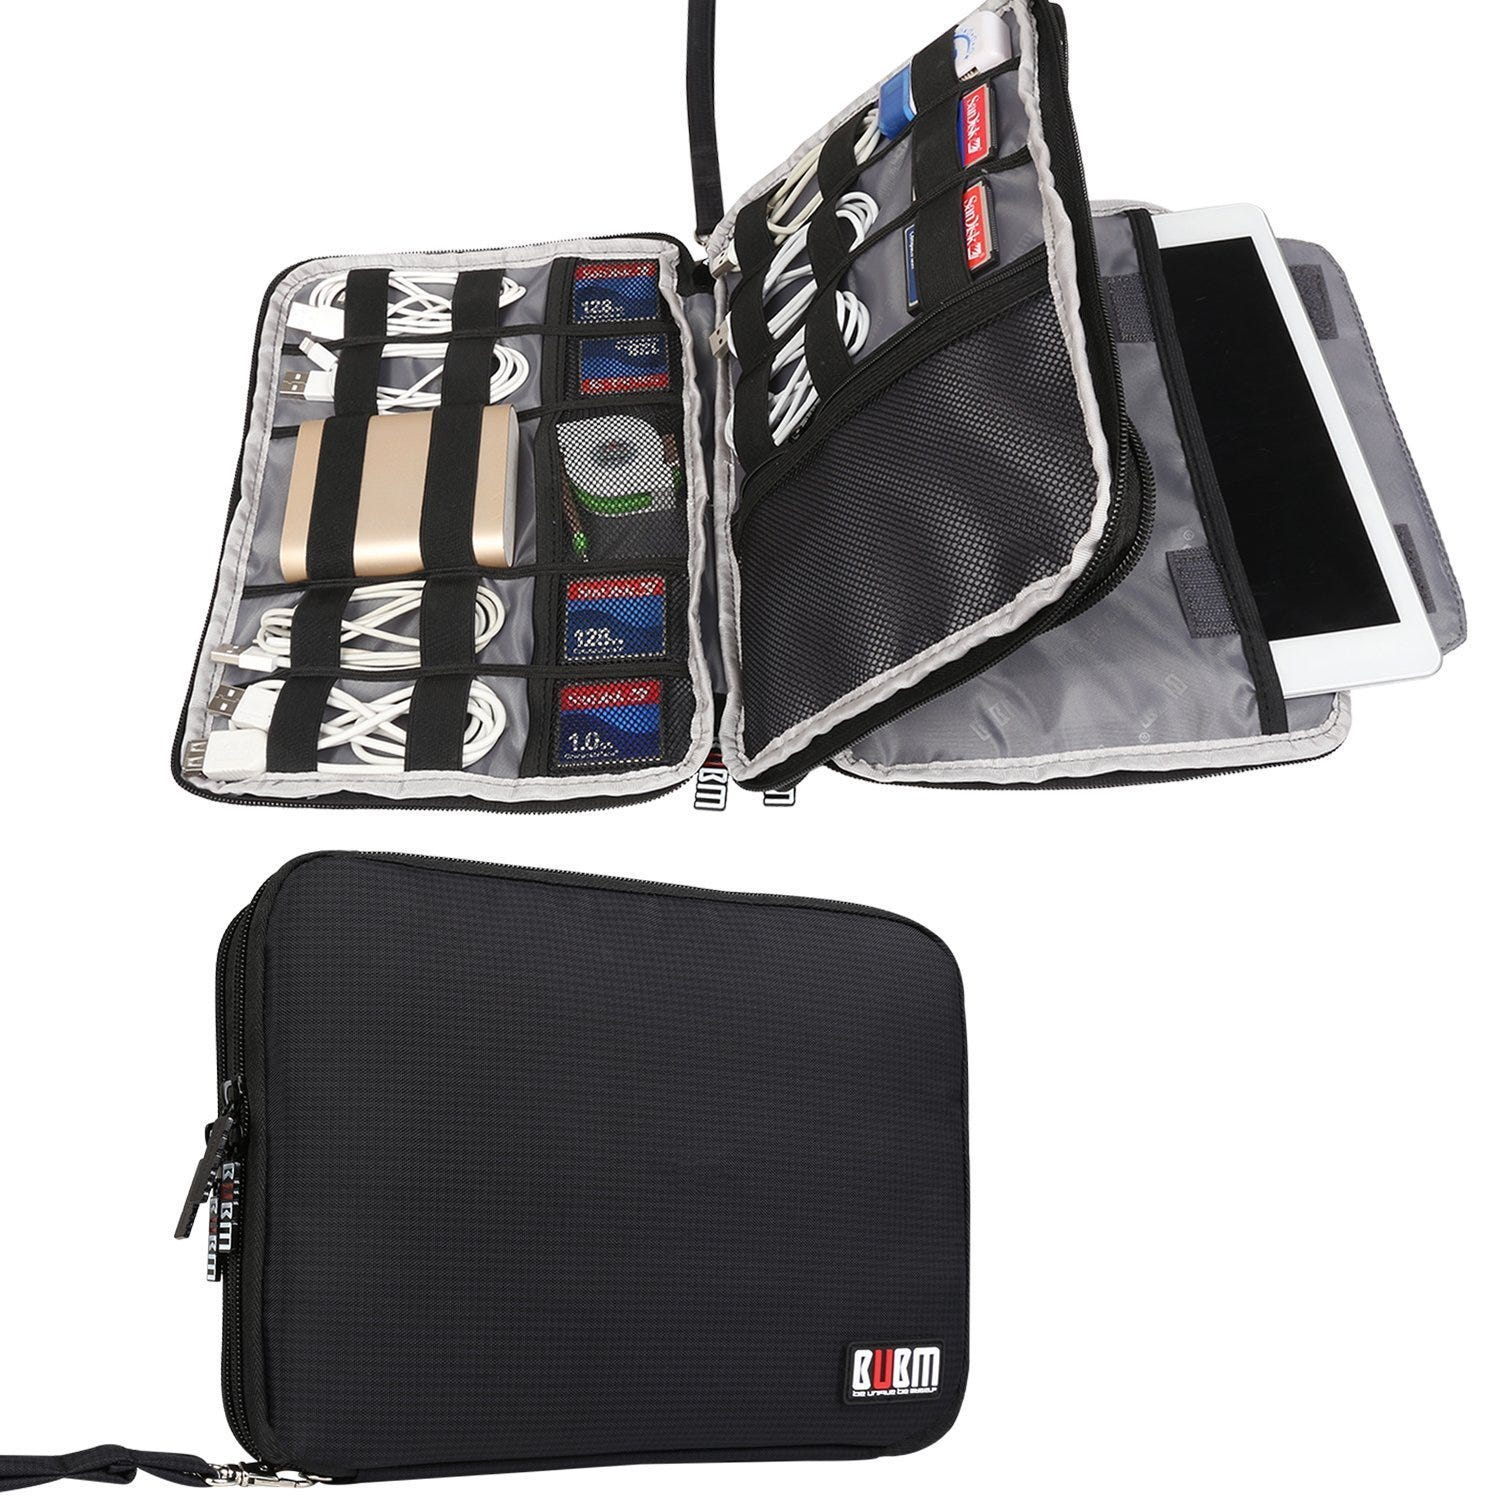 The Best Bag Organizers for Your Laptop Bag 0deefaf846c14